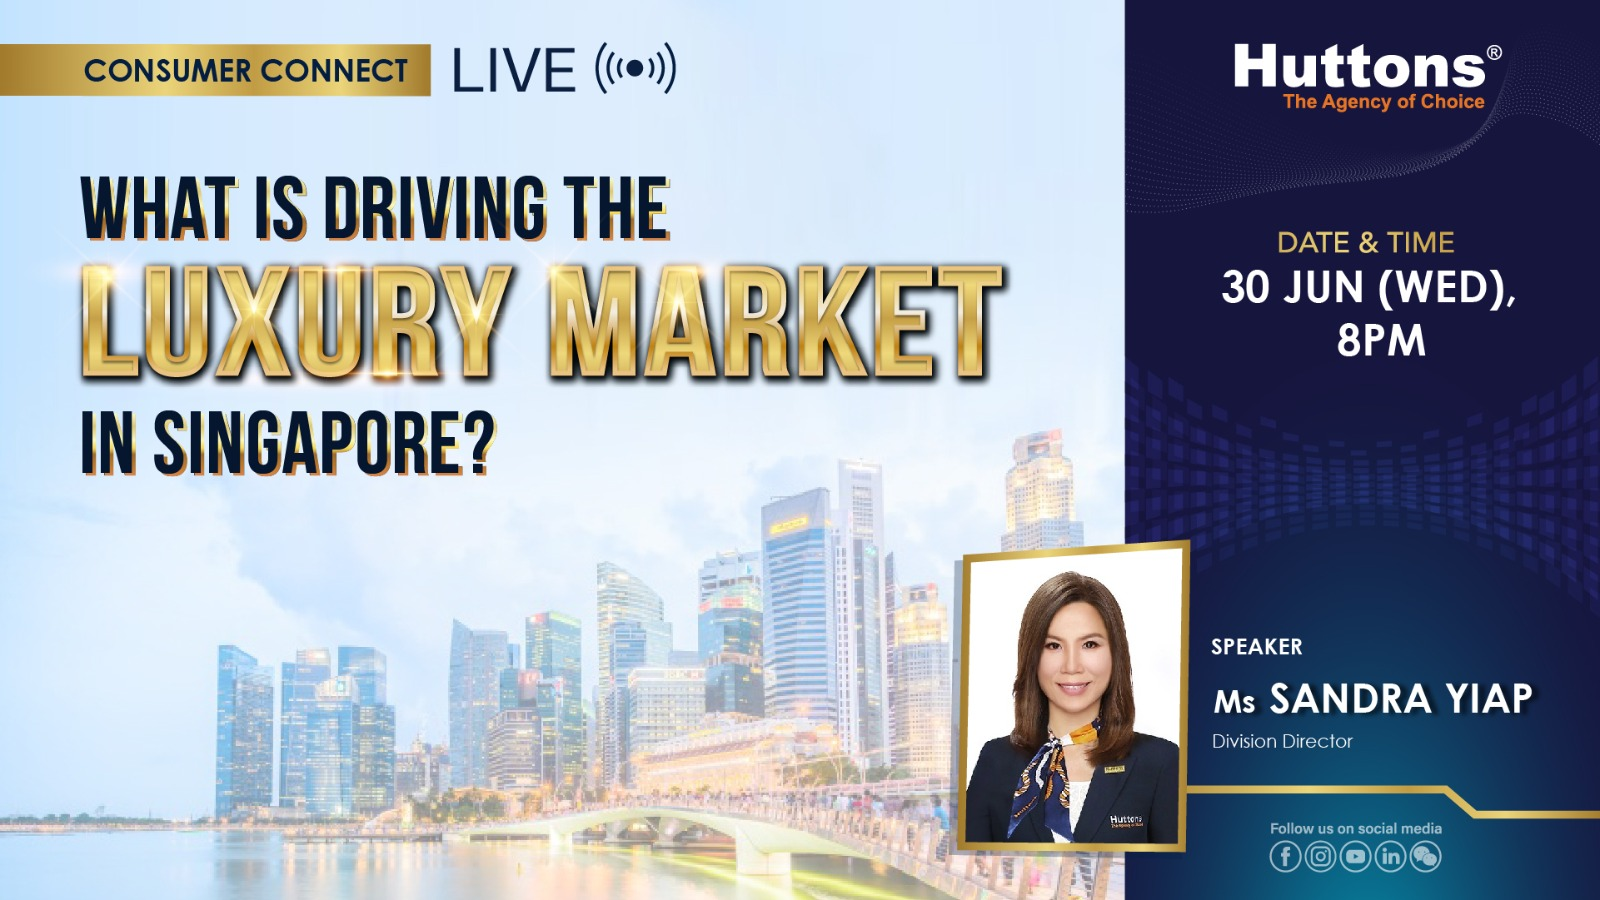 Huttons Consumer Connect - What is Driving the Luxury Market in Singapore